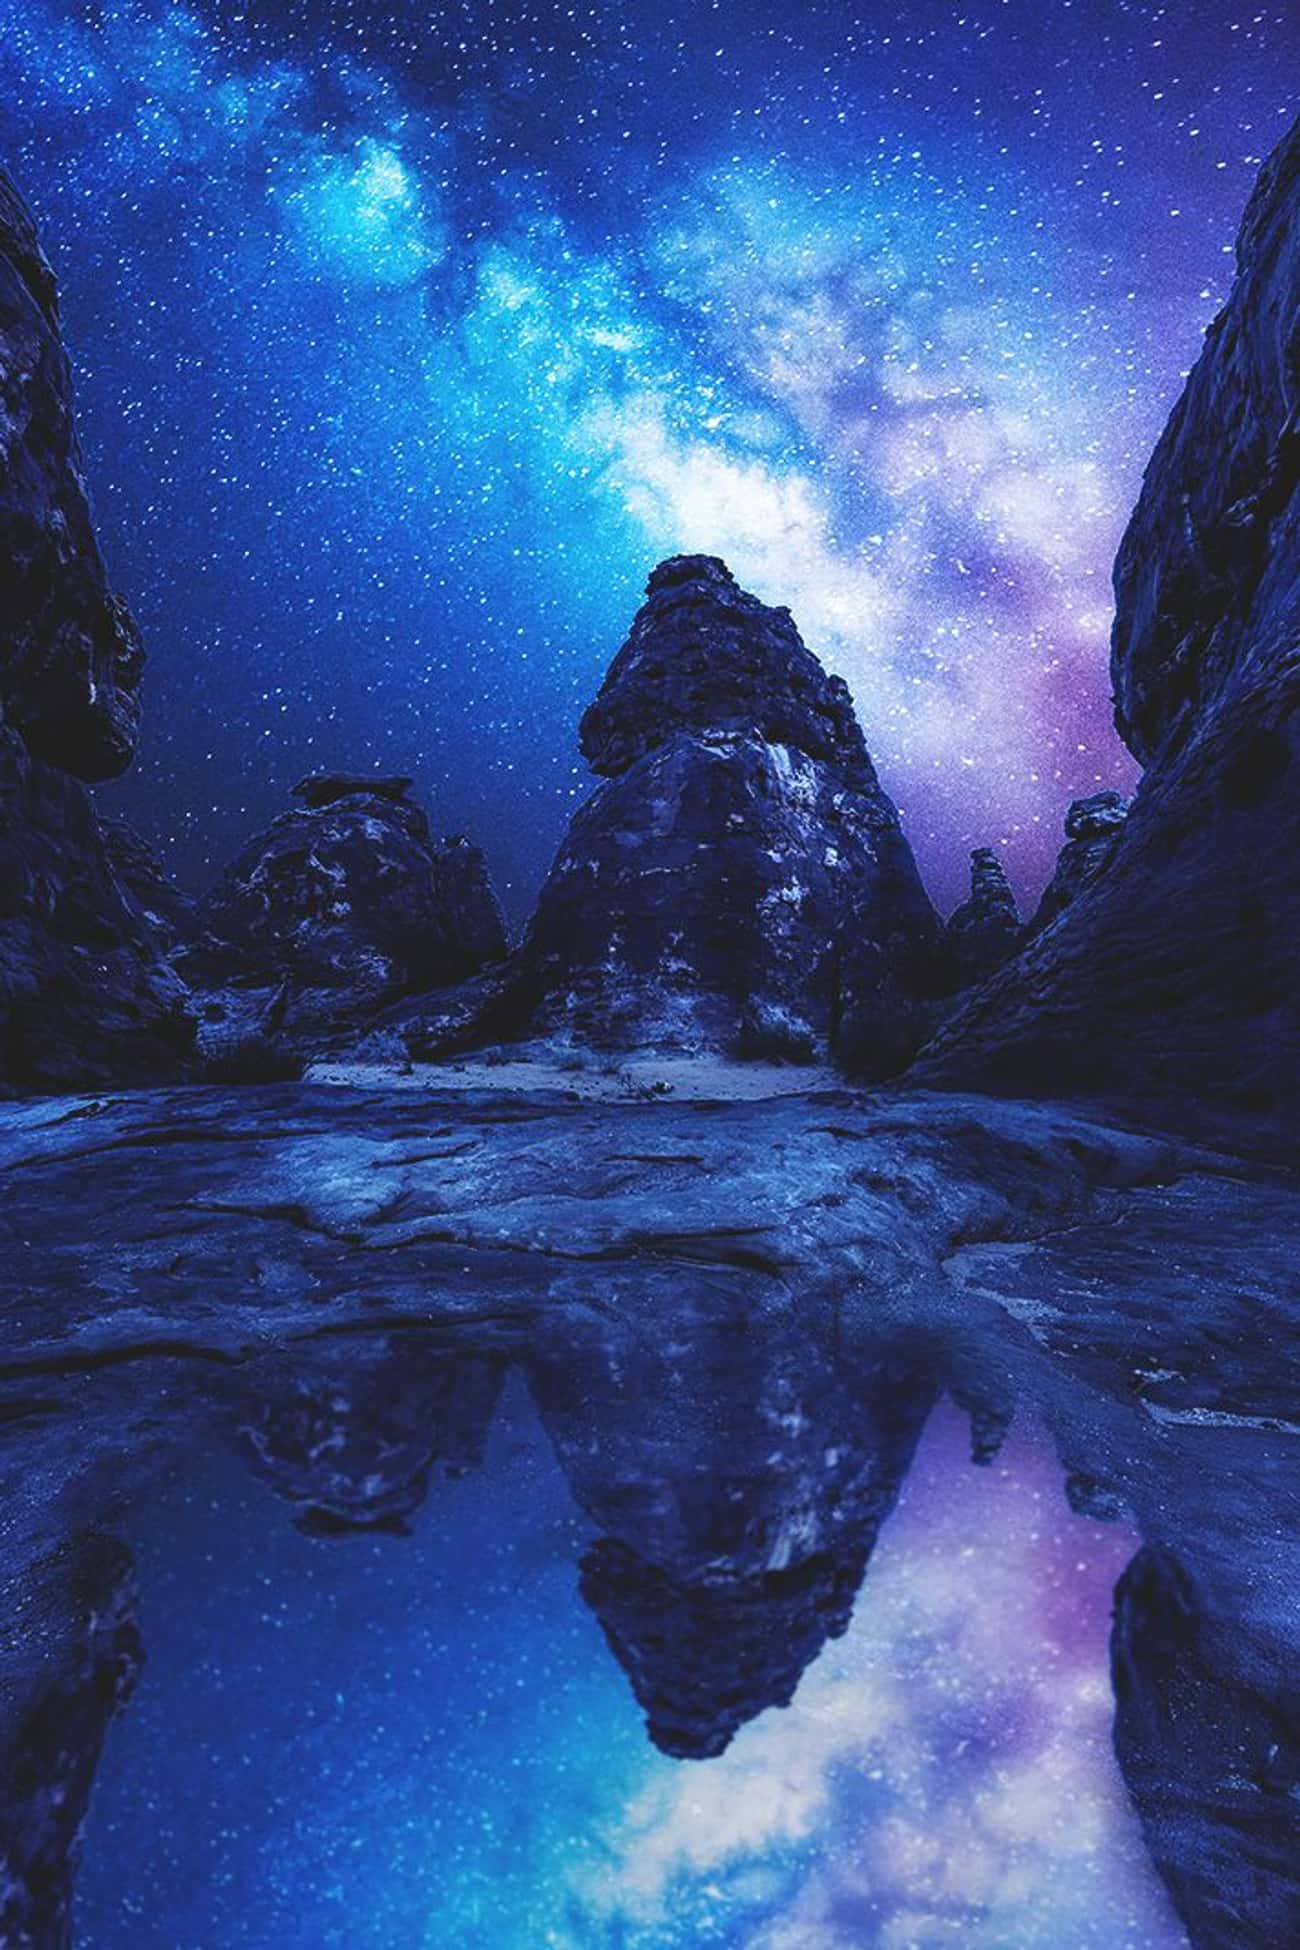 Milky Way Reflected in a Lake  is listed (or ranked) 2 on the list 40 Photos of Fantasy Landscapes That Really Exist